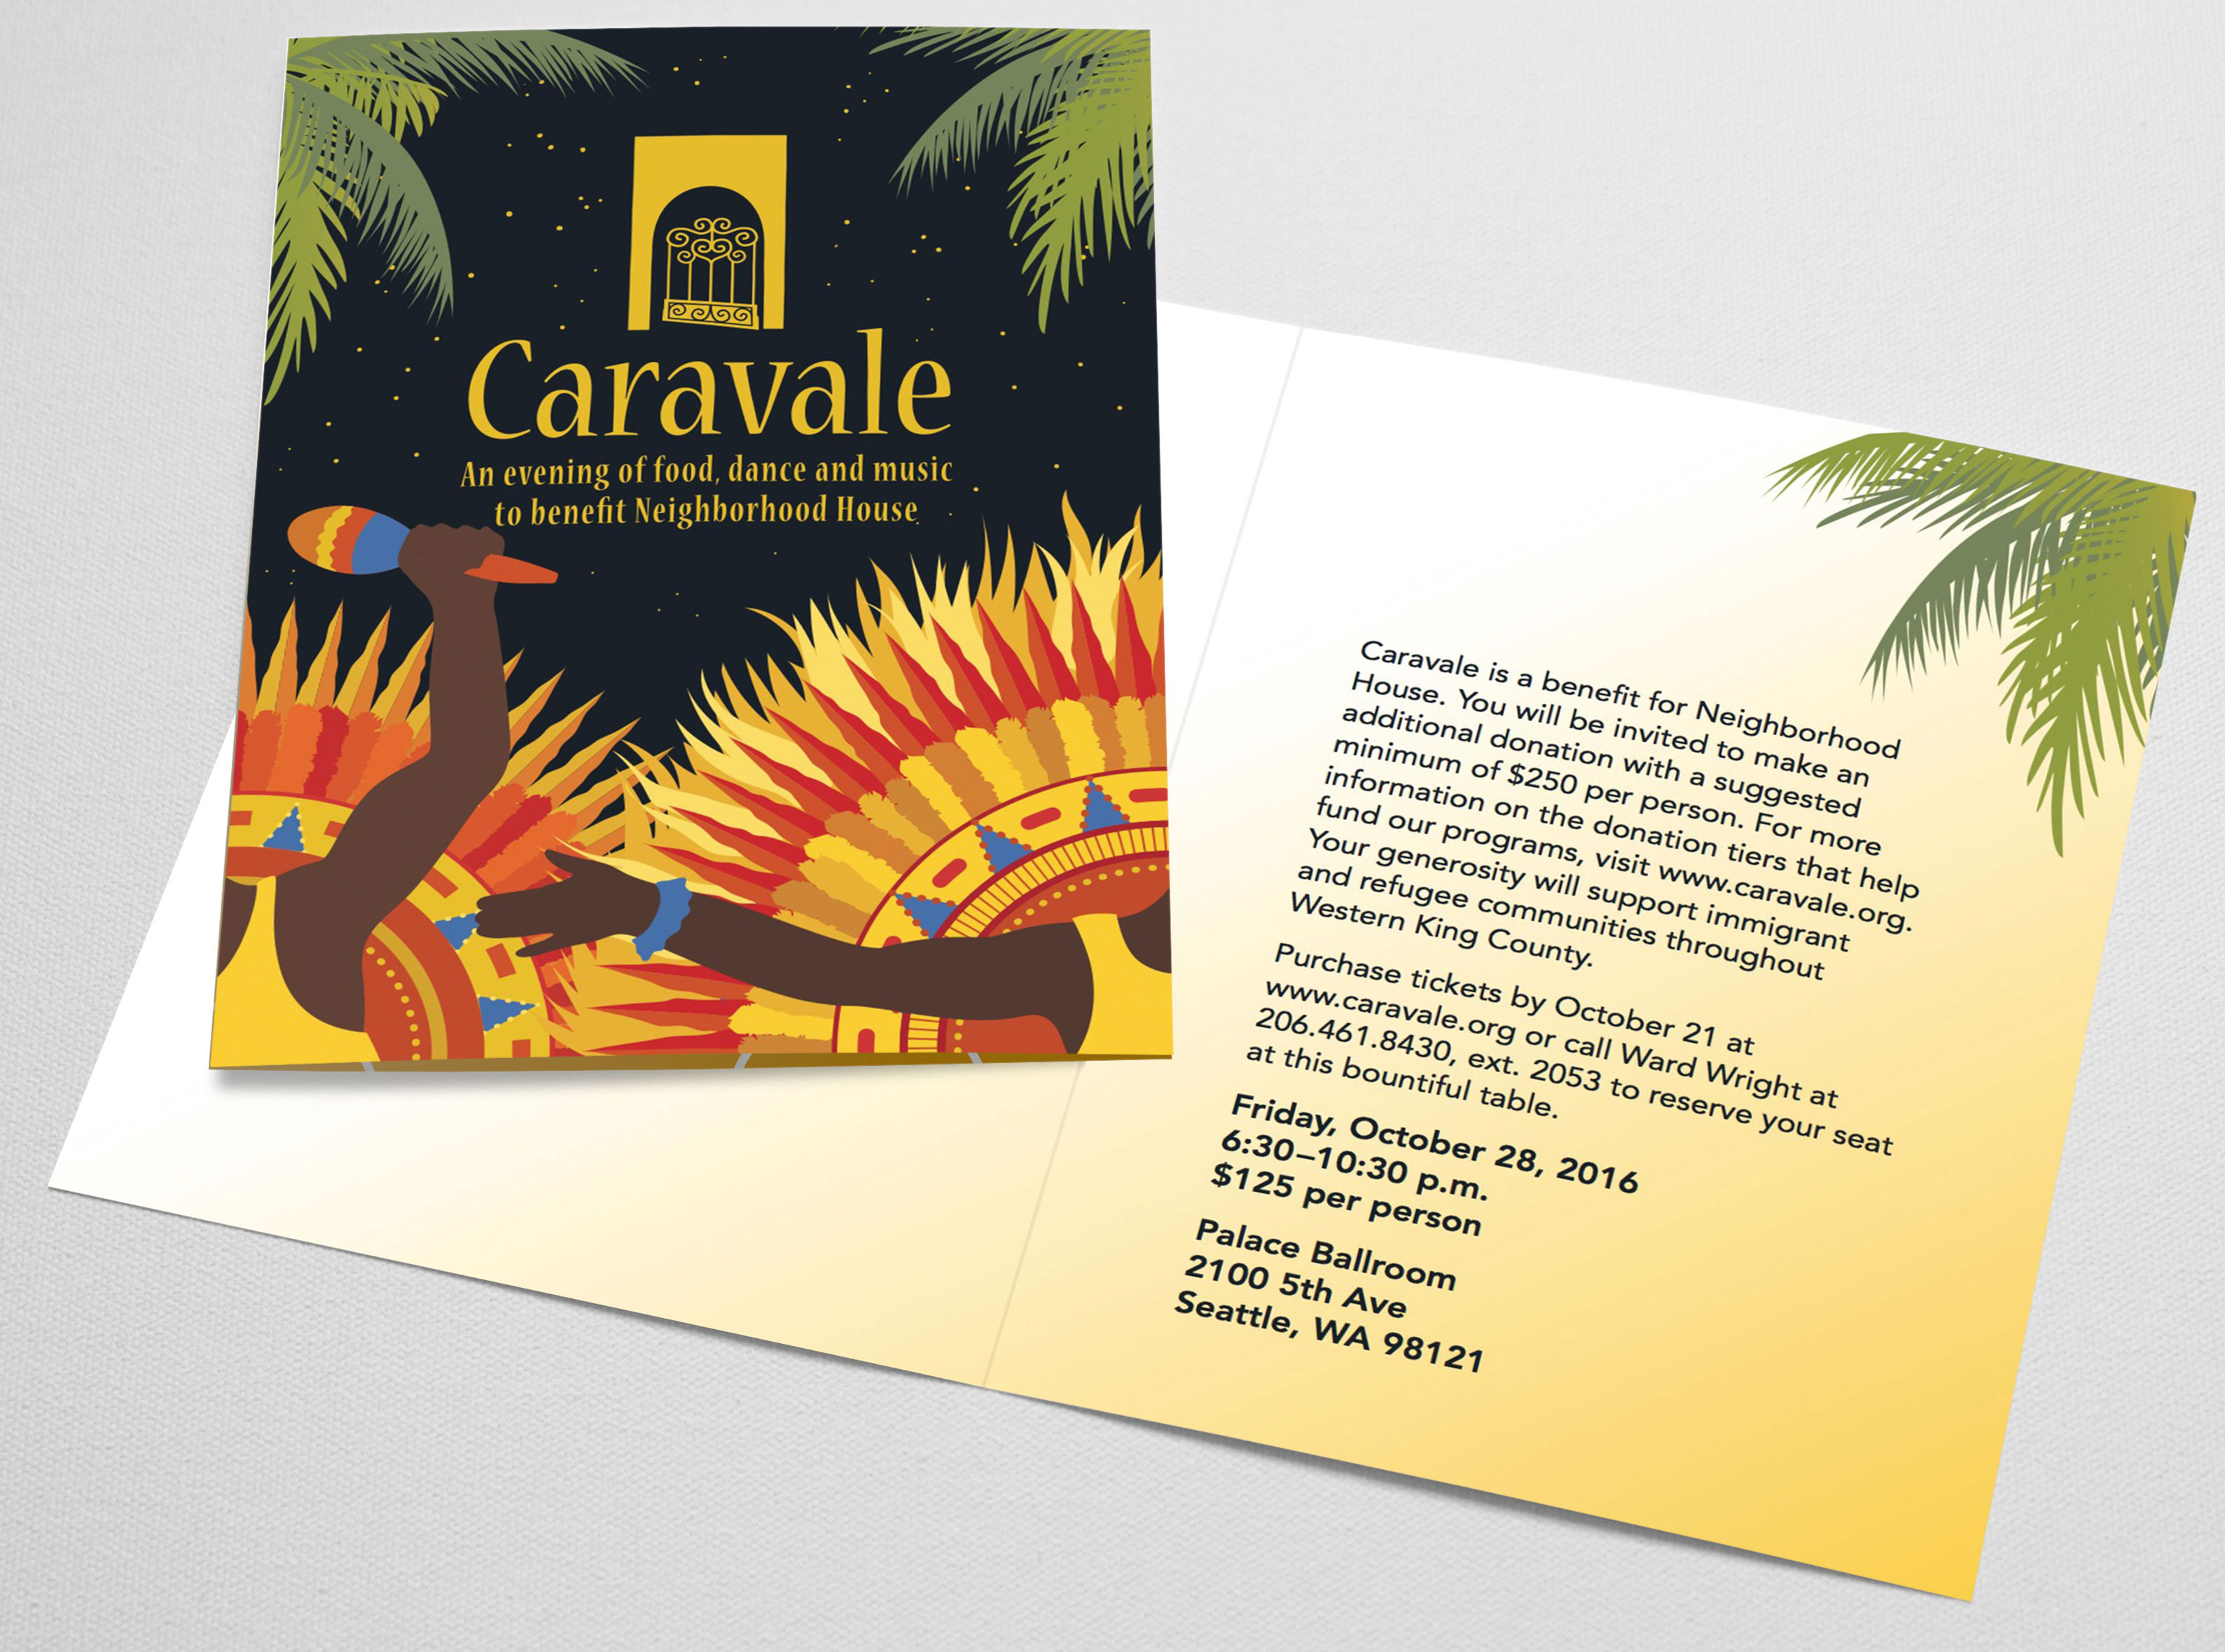 Invitation for Caravale 2016 featuring original artwork inspired by Caribbean carnivals